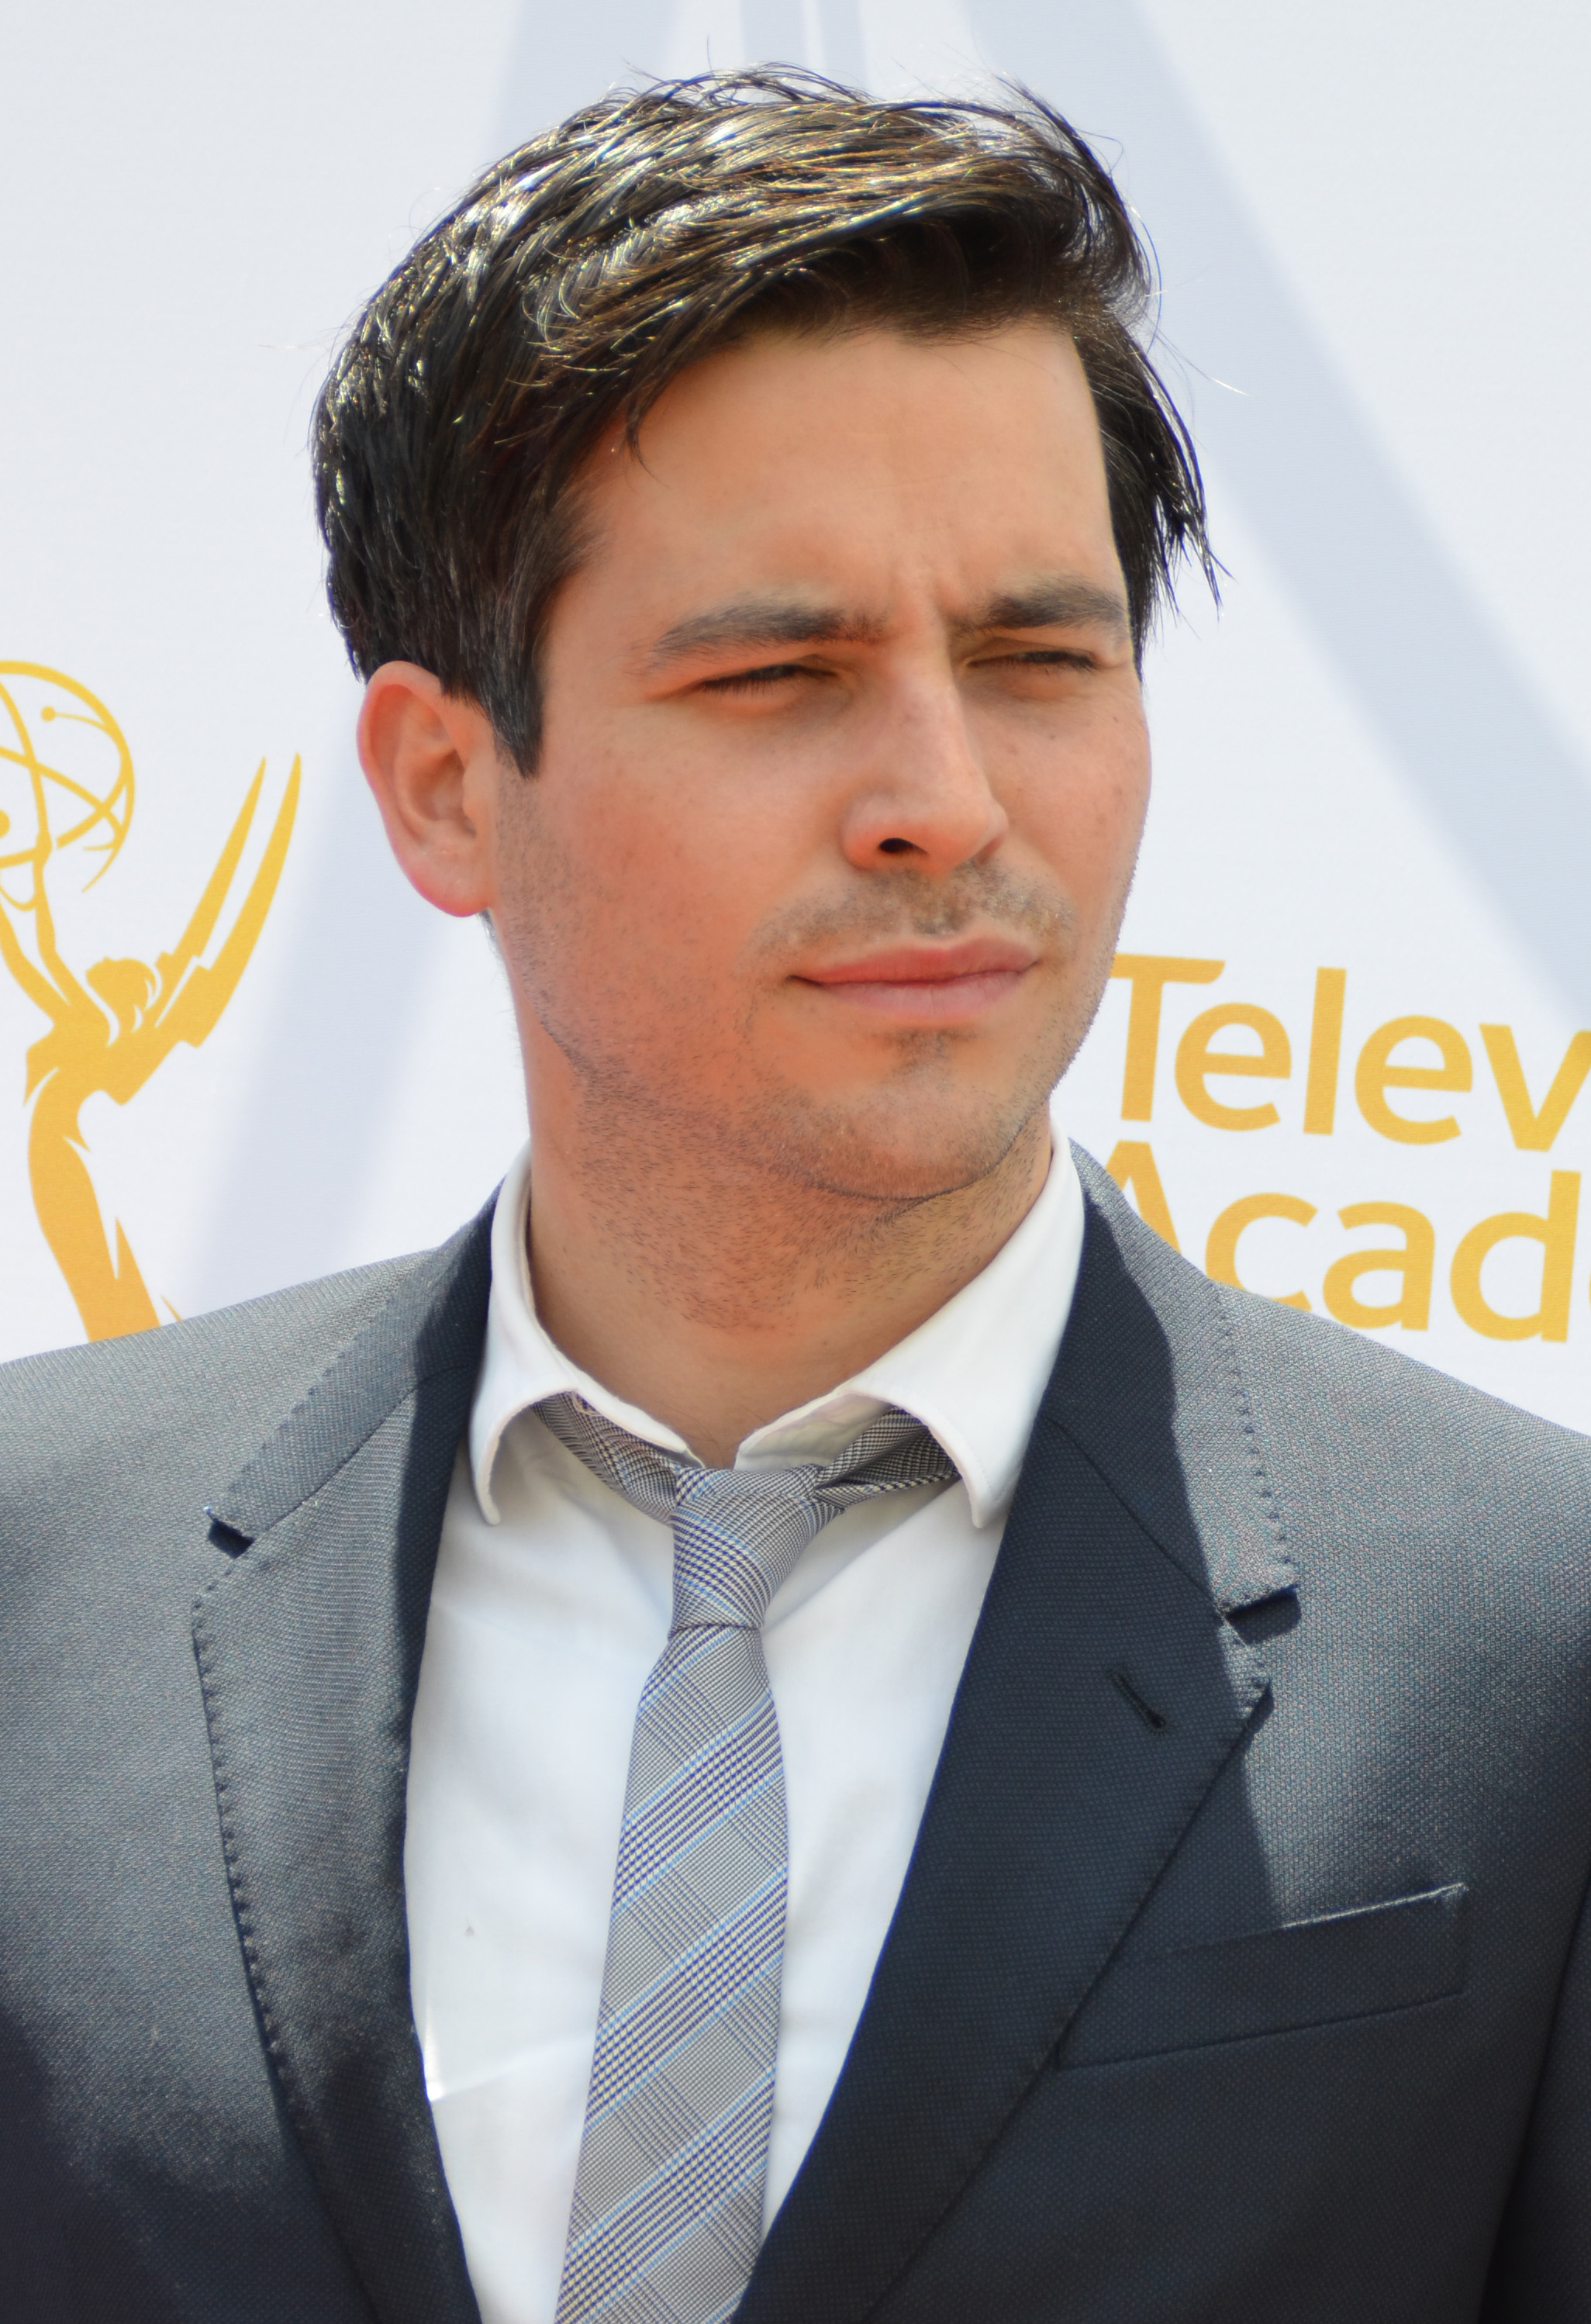 James-Collier in May 2014